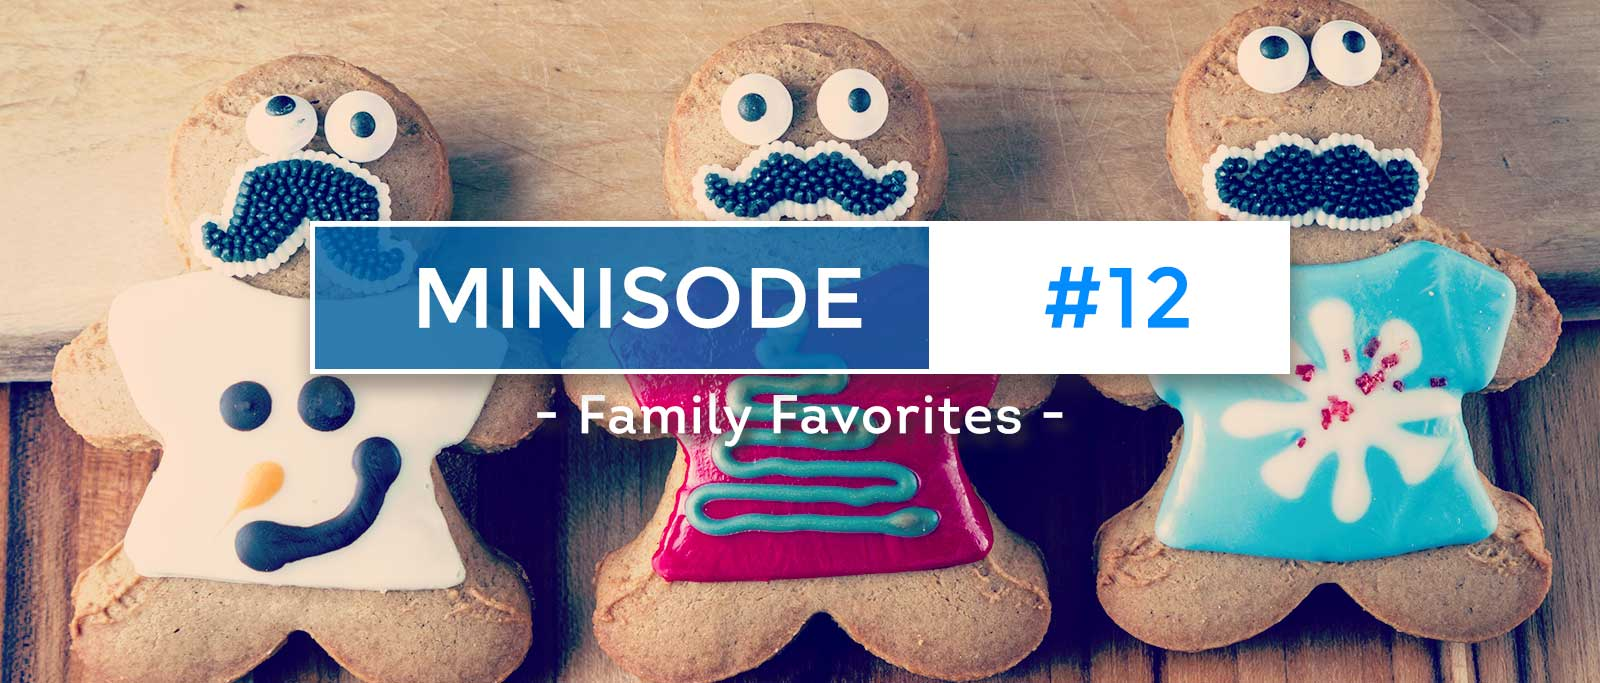 minisode-12-family-favorites-website